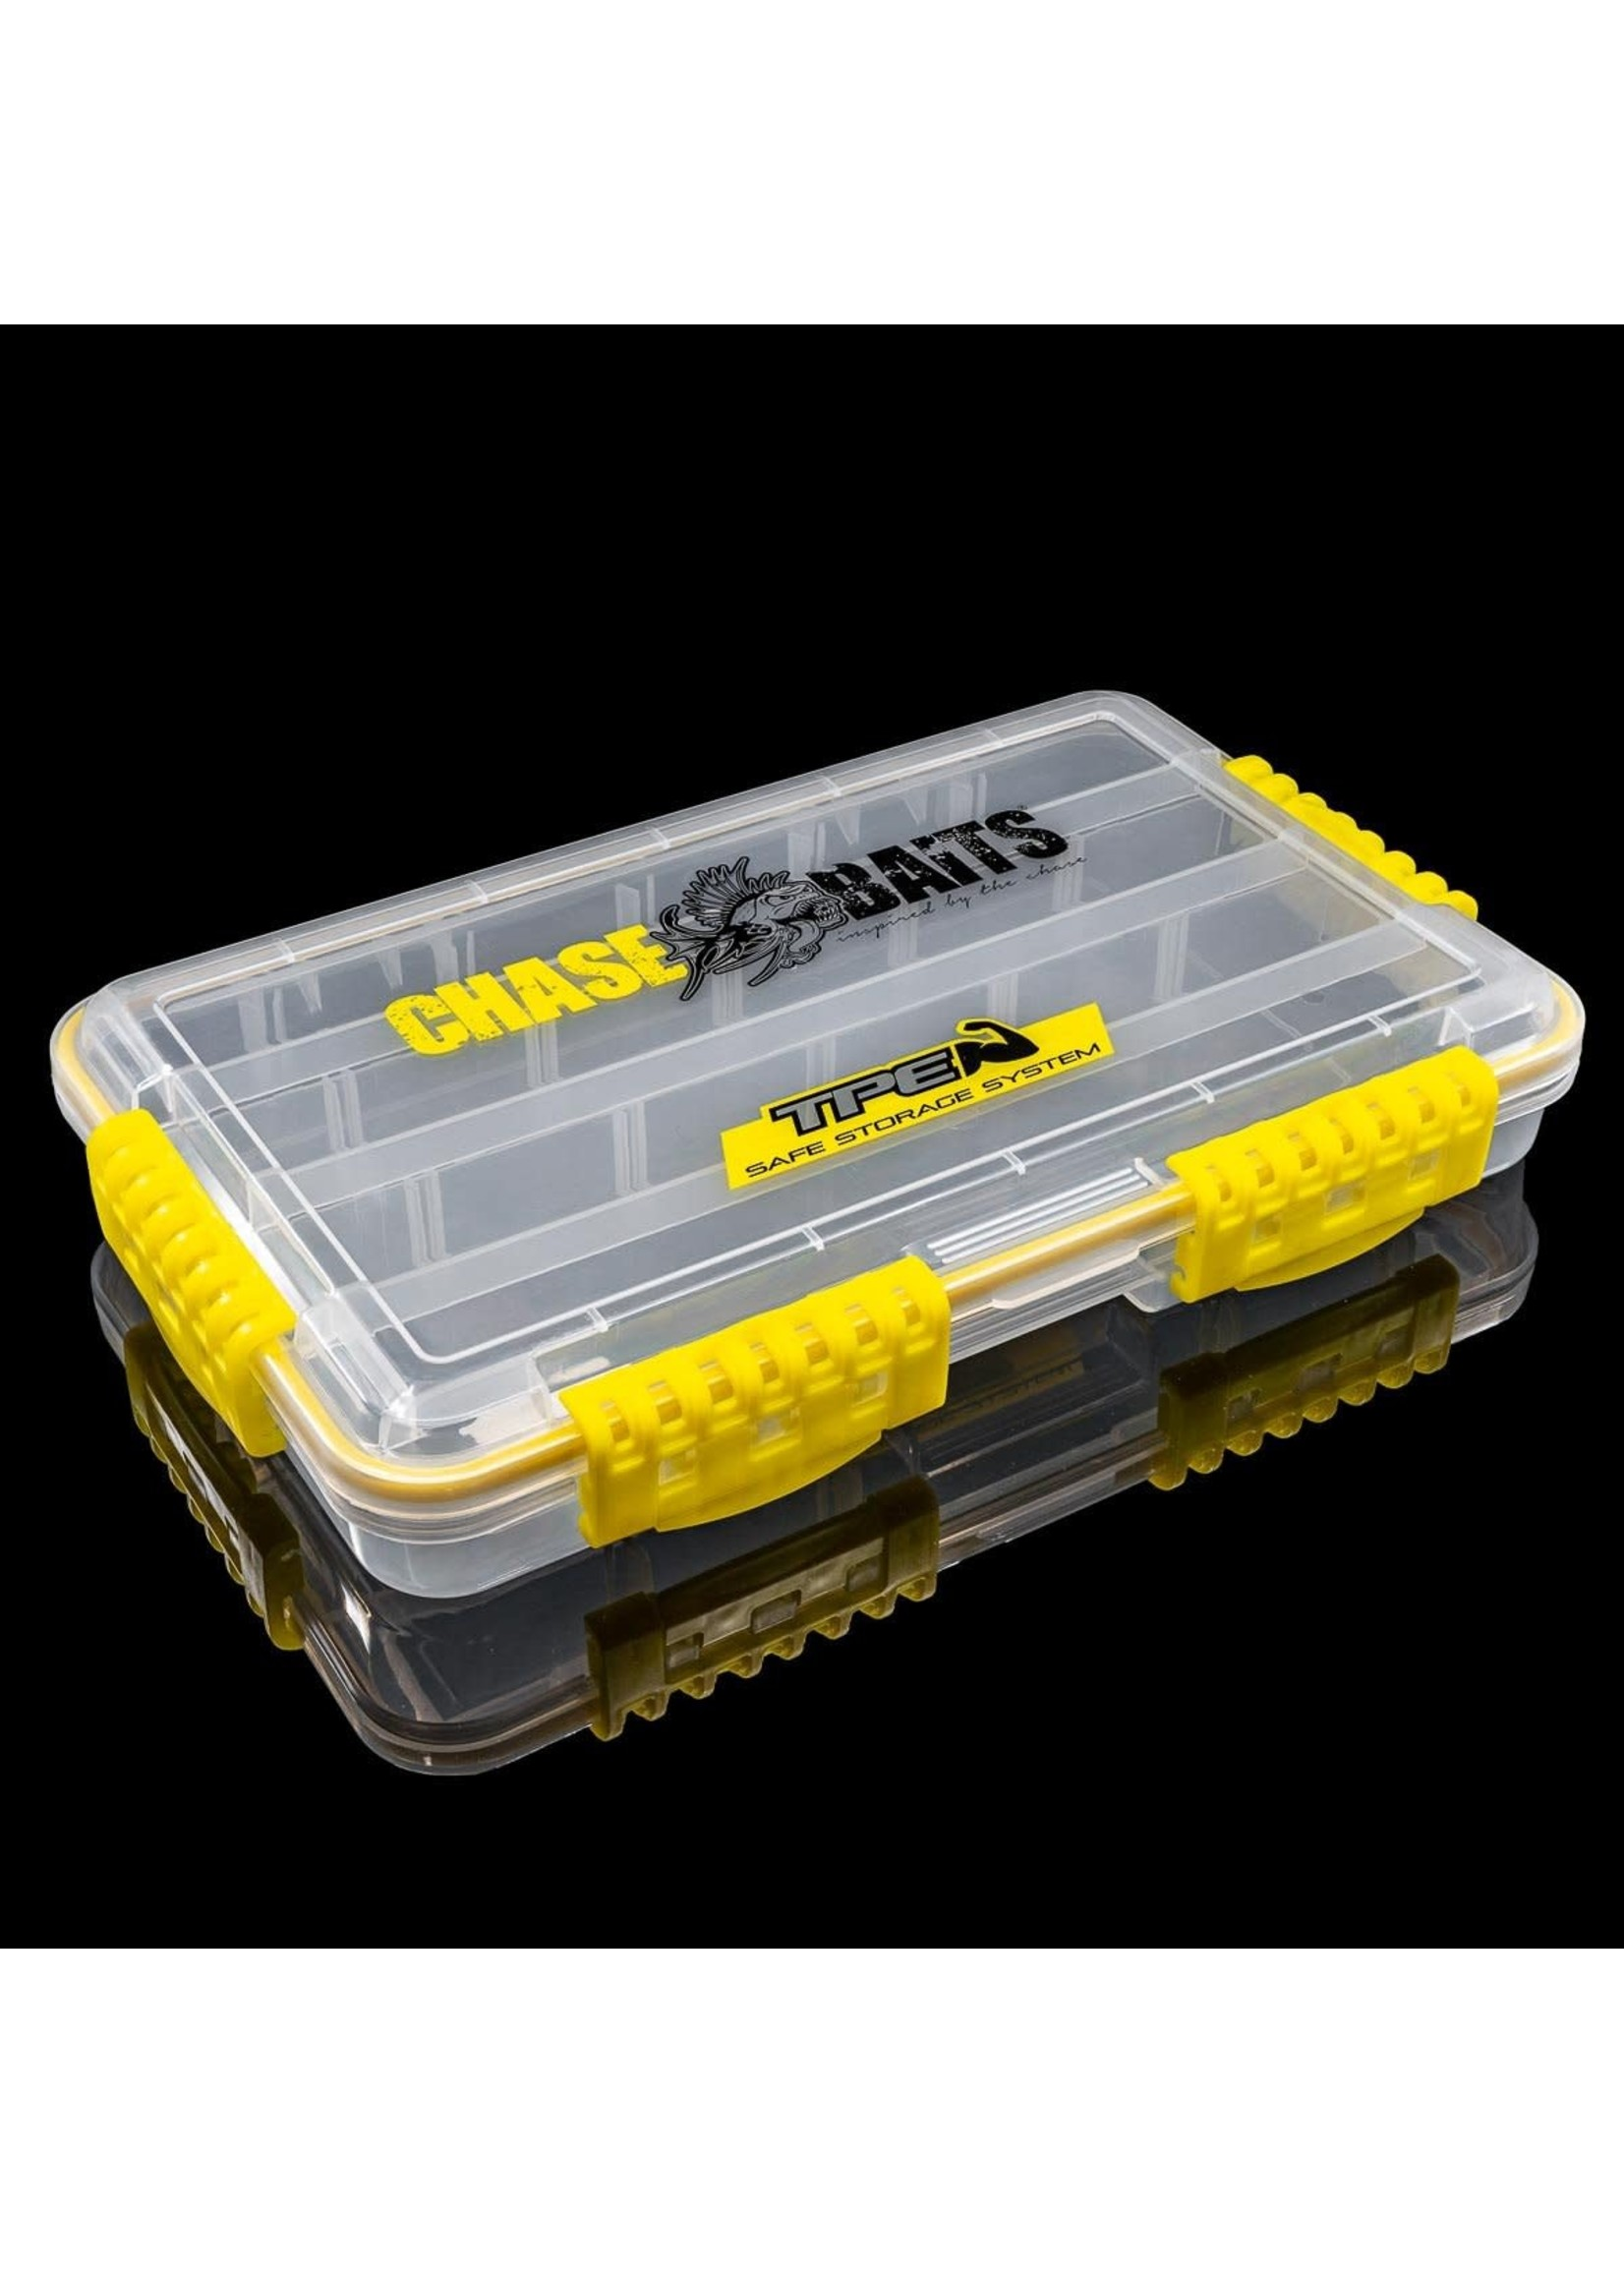 ChaseBaits TACKLE TRAY NonTPE Med